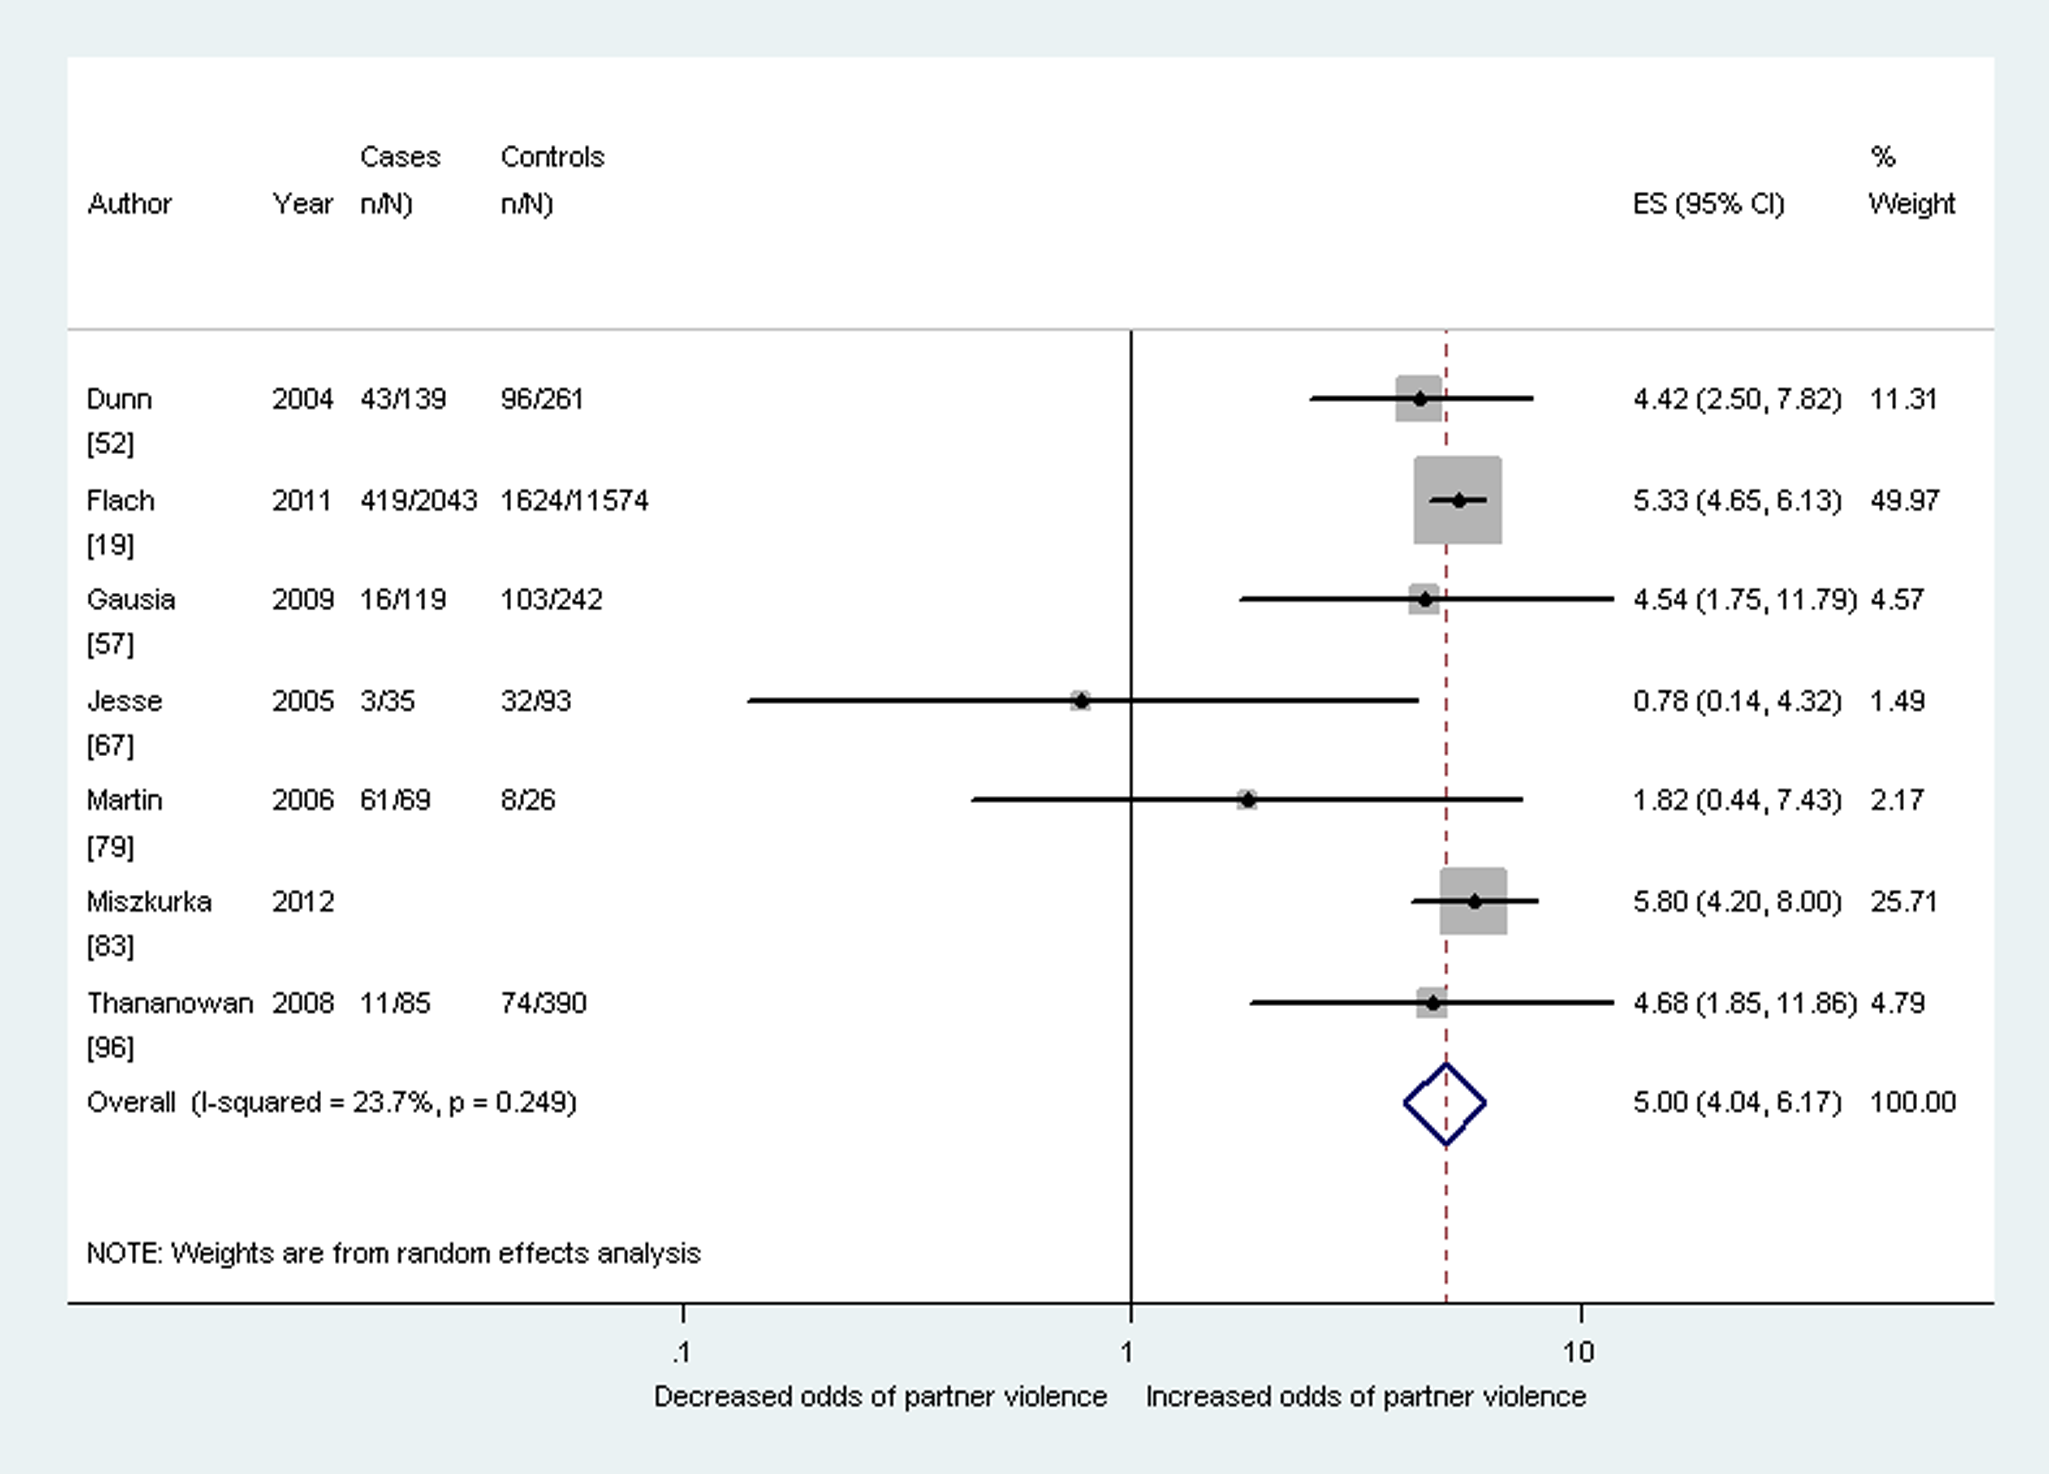 Meta-analysis of the association between antenatal depression and partner violence during pregnancy (cross-sectional studies).